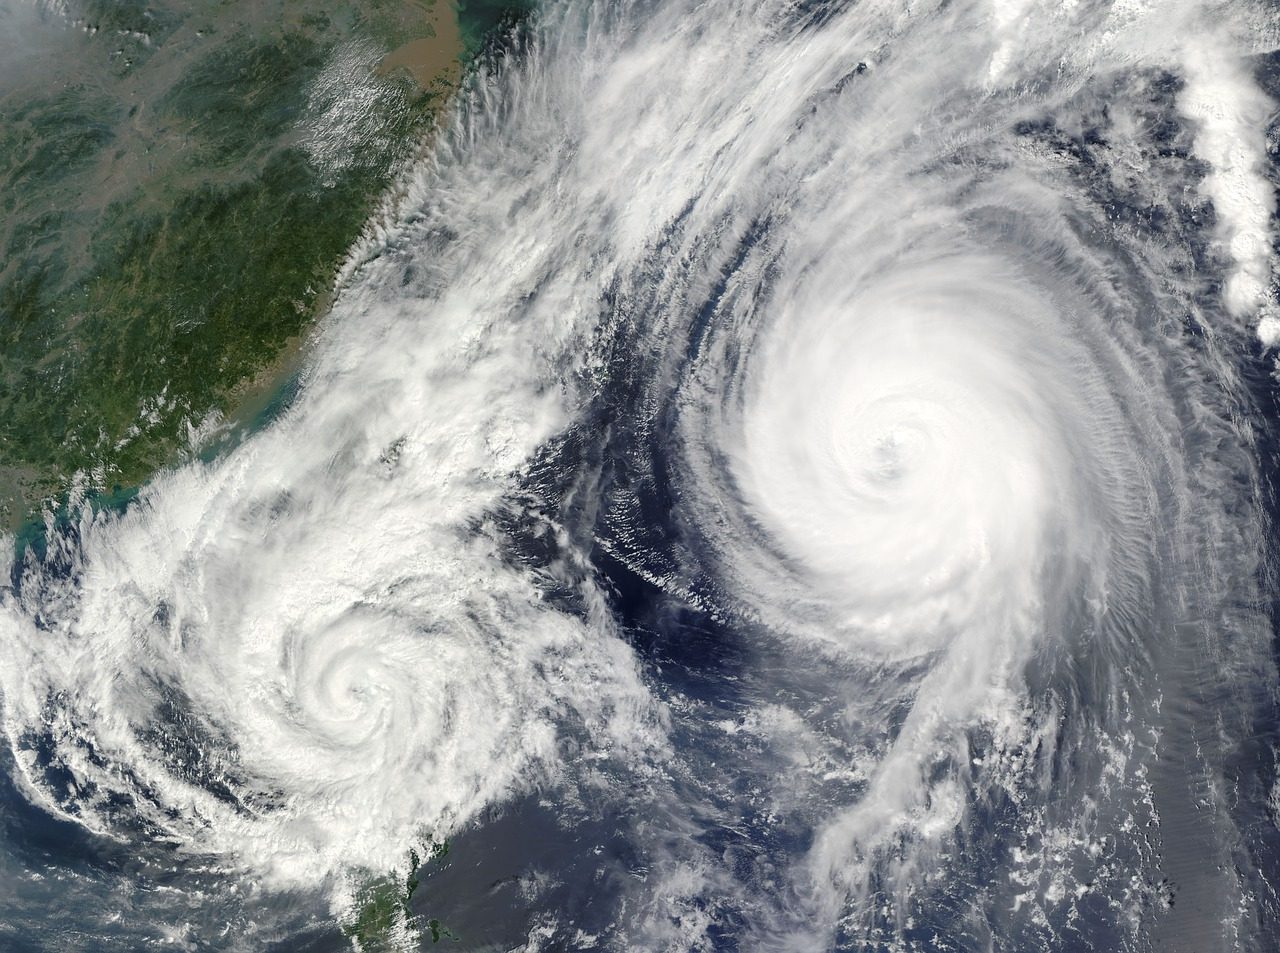 Two hurricanes